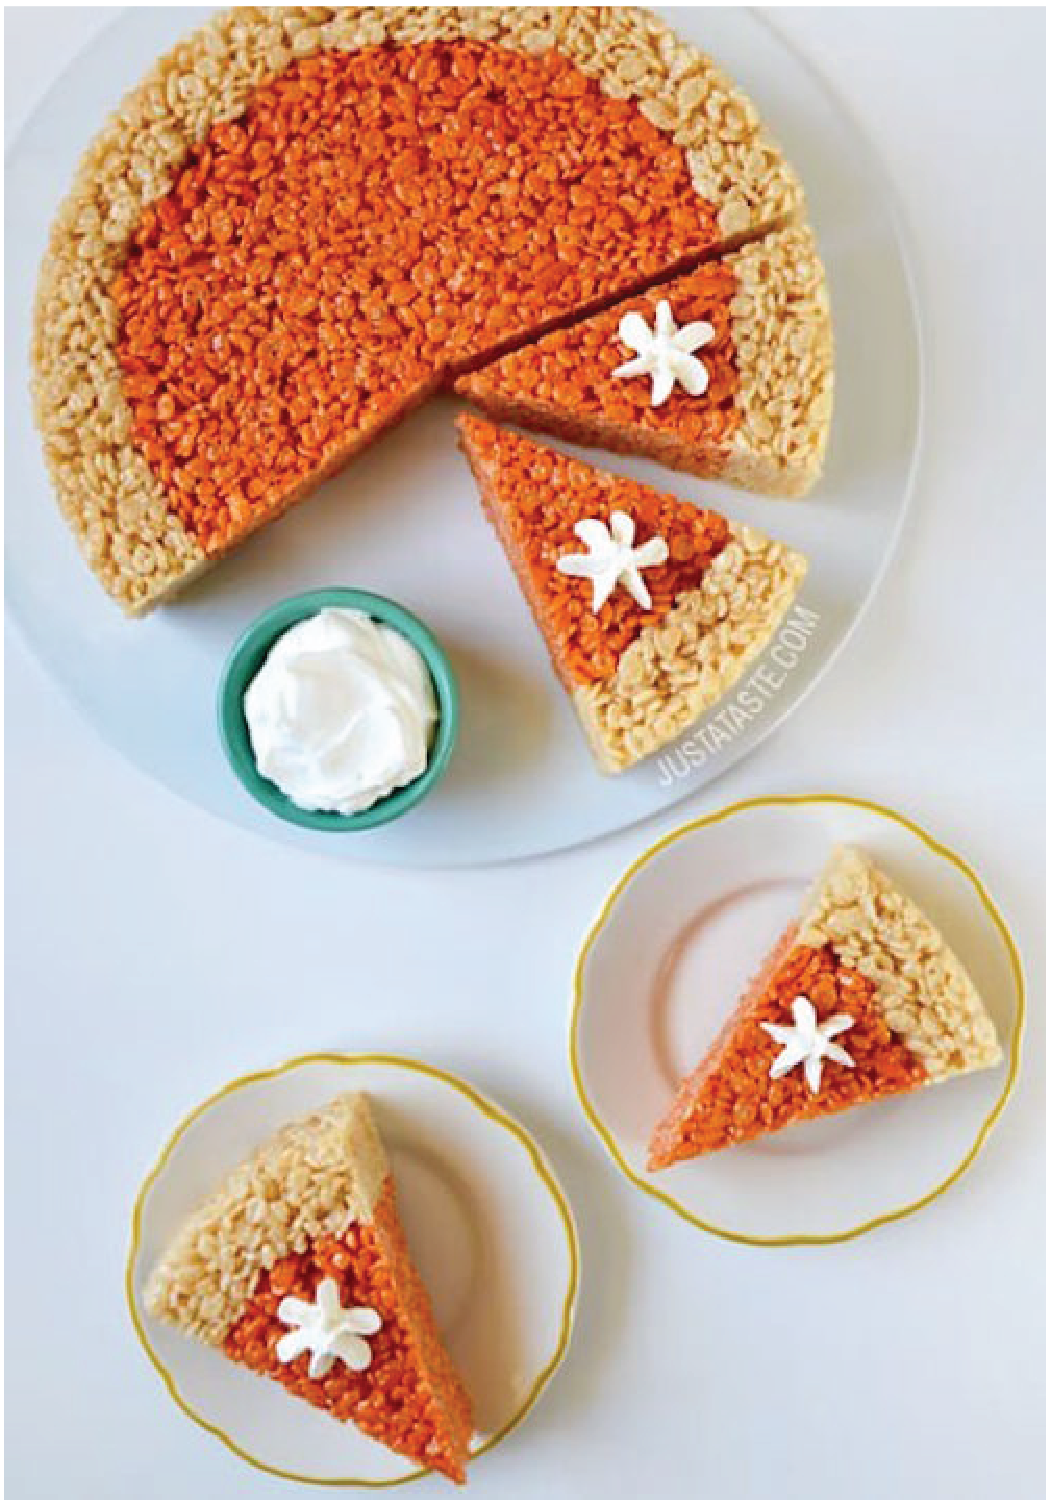 Weight loss spas south africa image 6